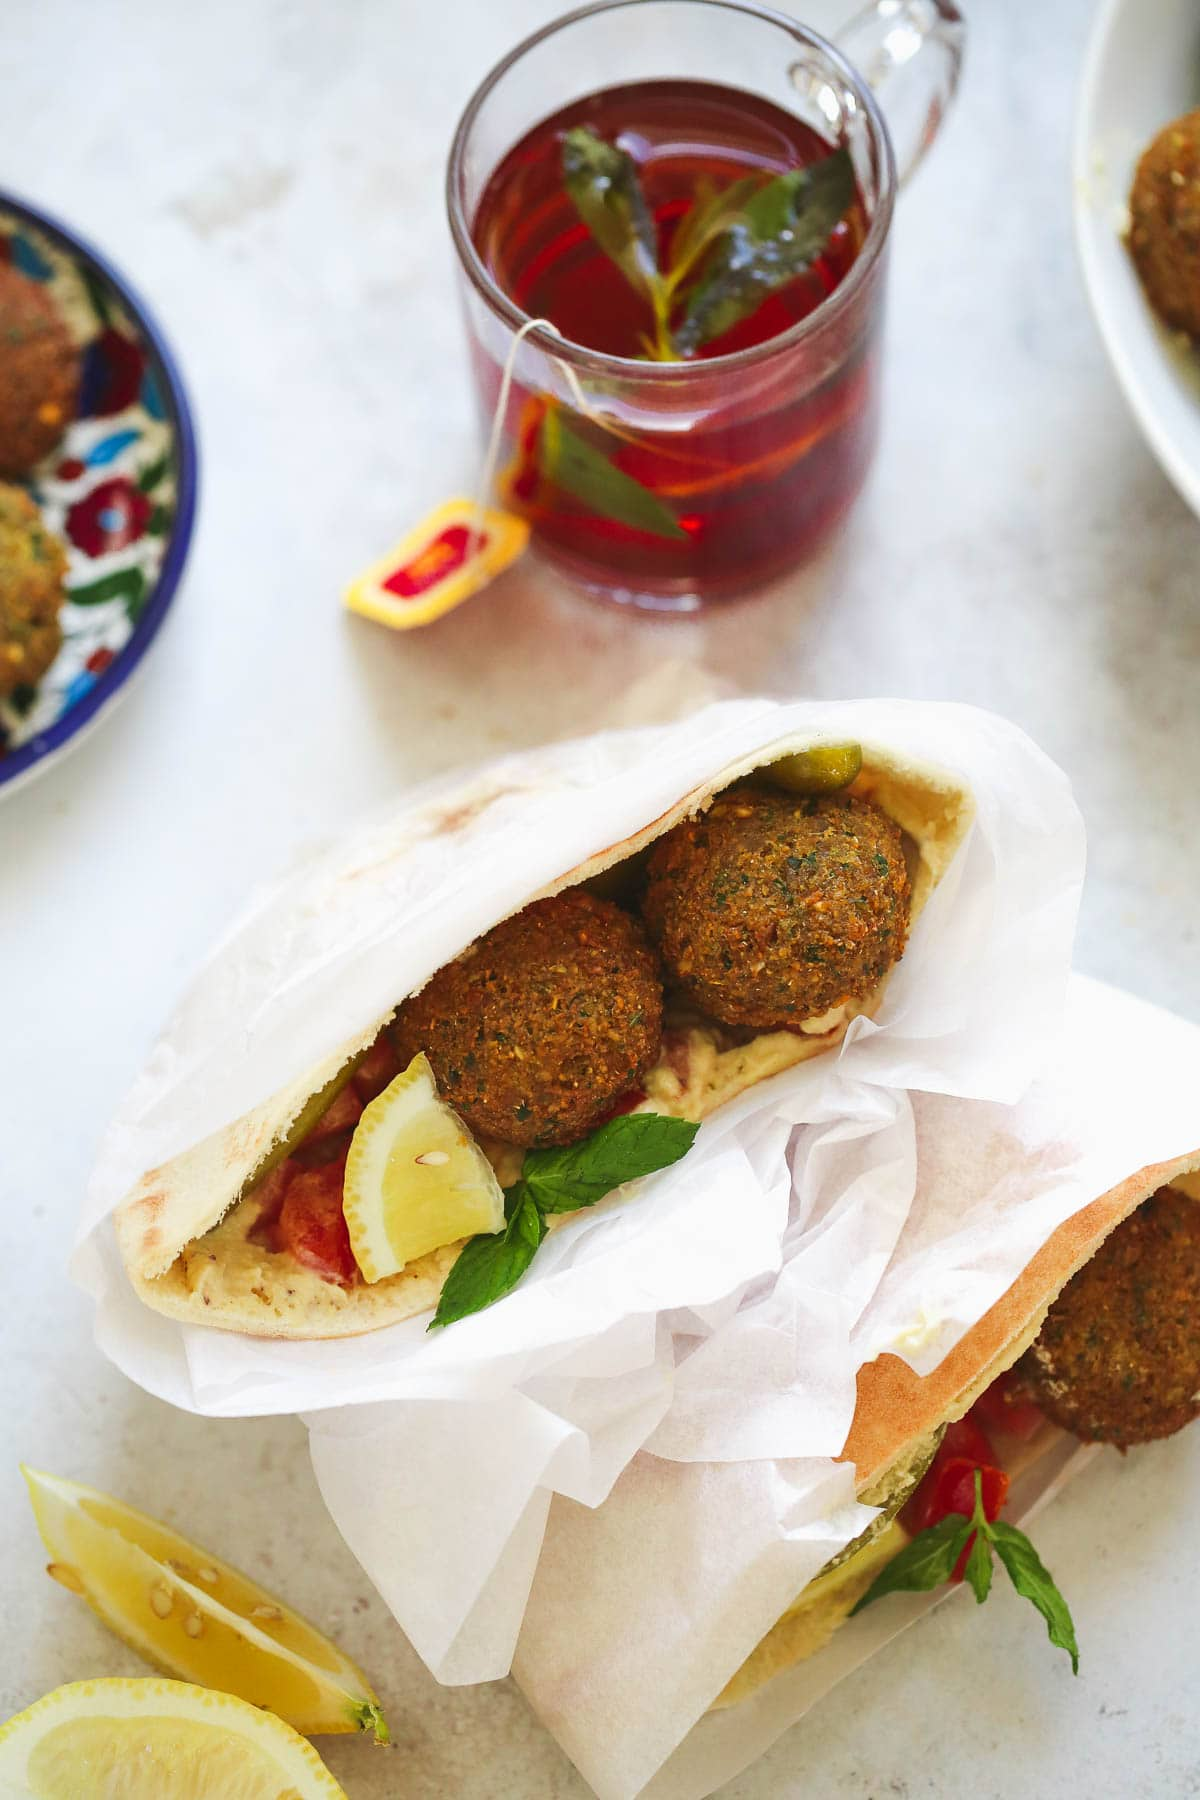 Falafel sandwiches in pita bread wrapped. Garnished with fresh lemon wedges and fresh mint leaves.